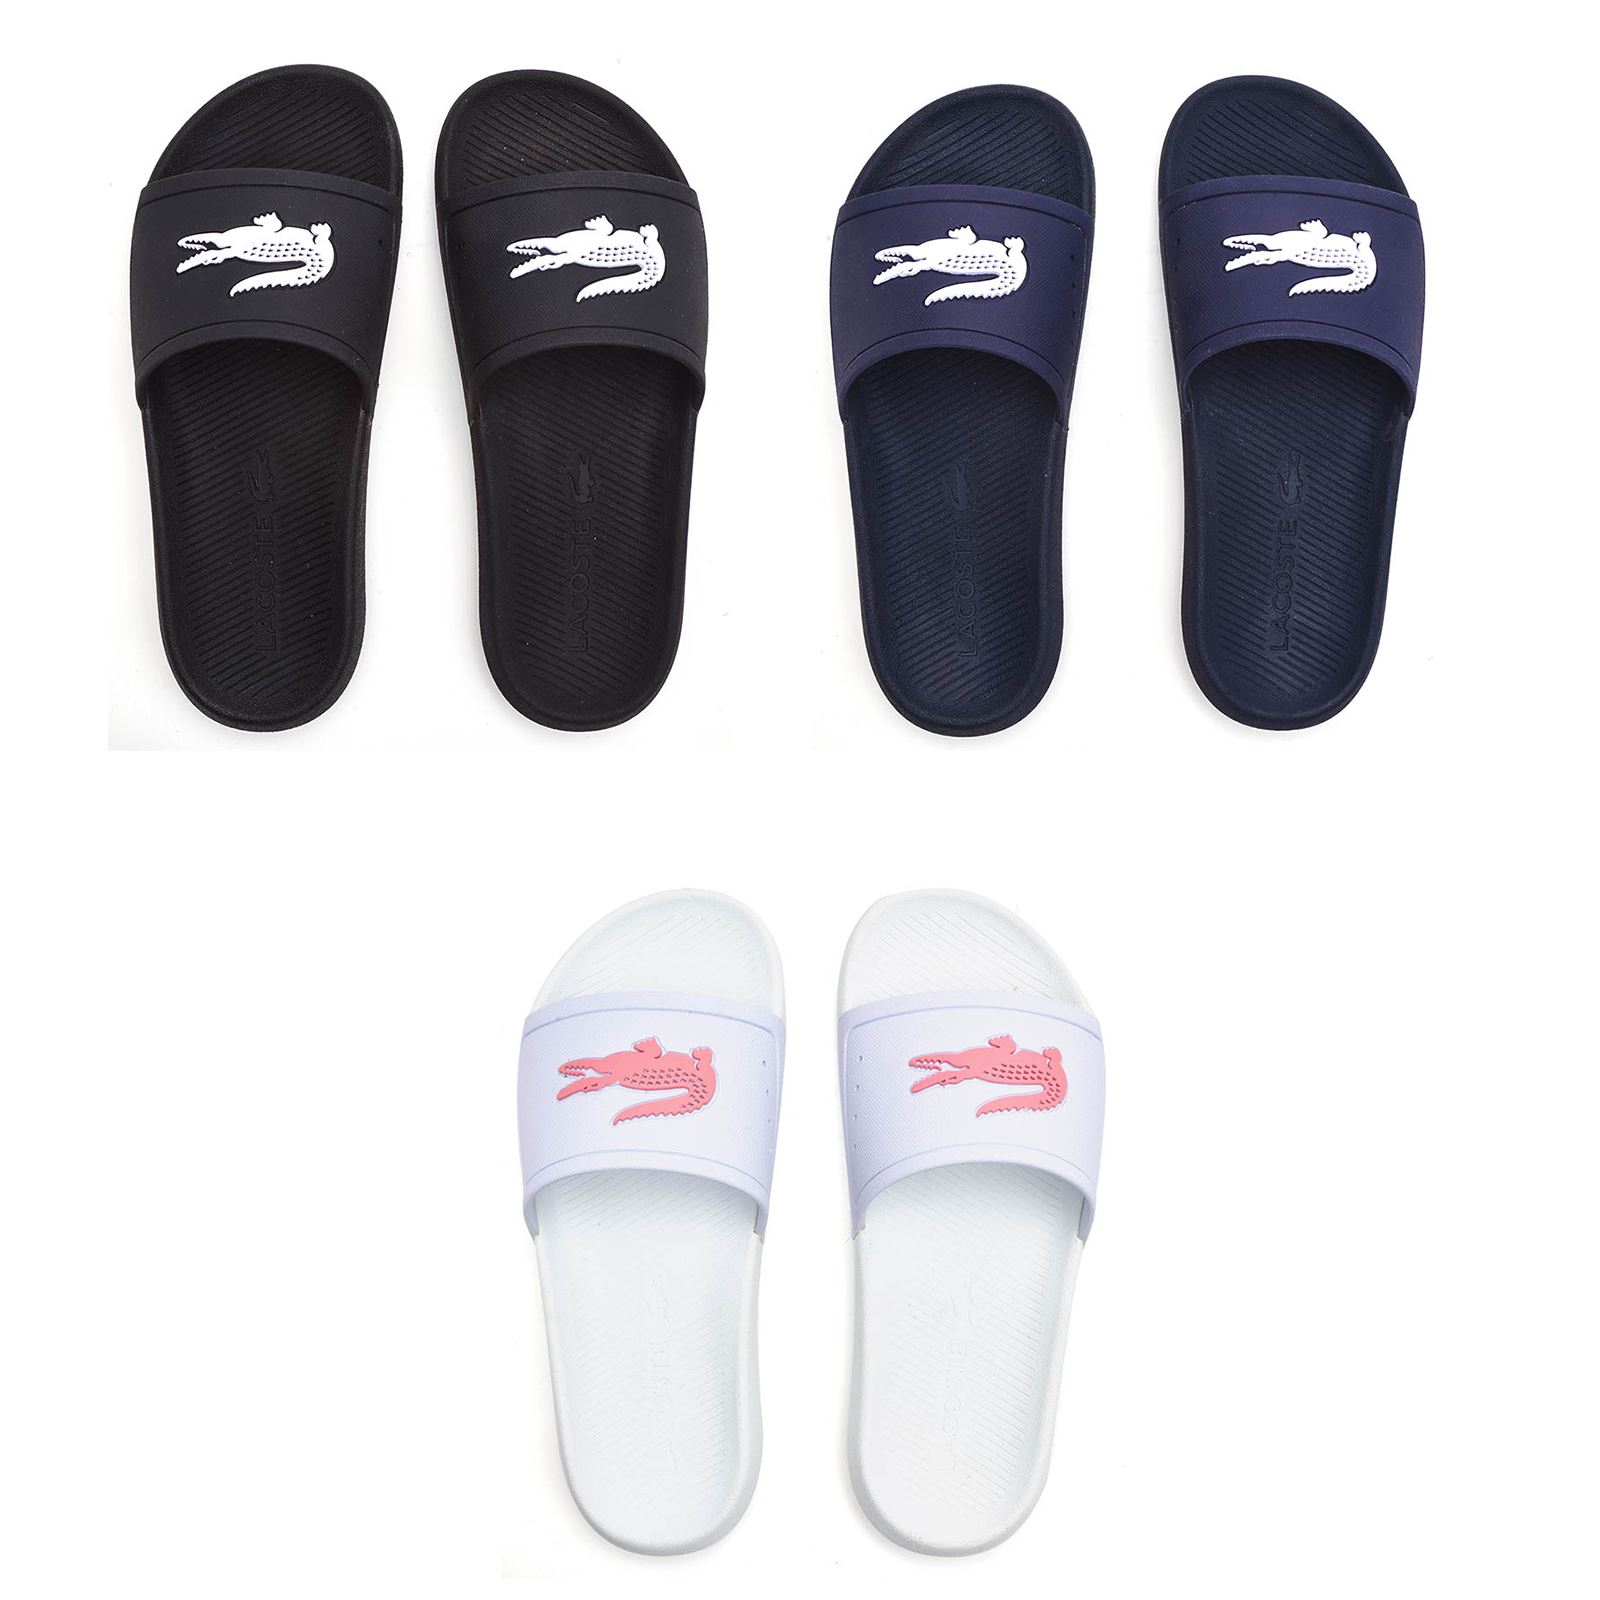 4eb3c010fef9 Details about Lacoste Croco Slide 119 3 CFA Pool Beach Slip On Sandals in  White